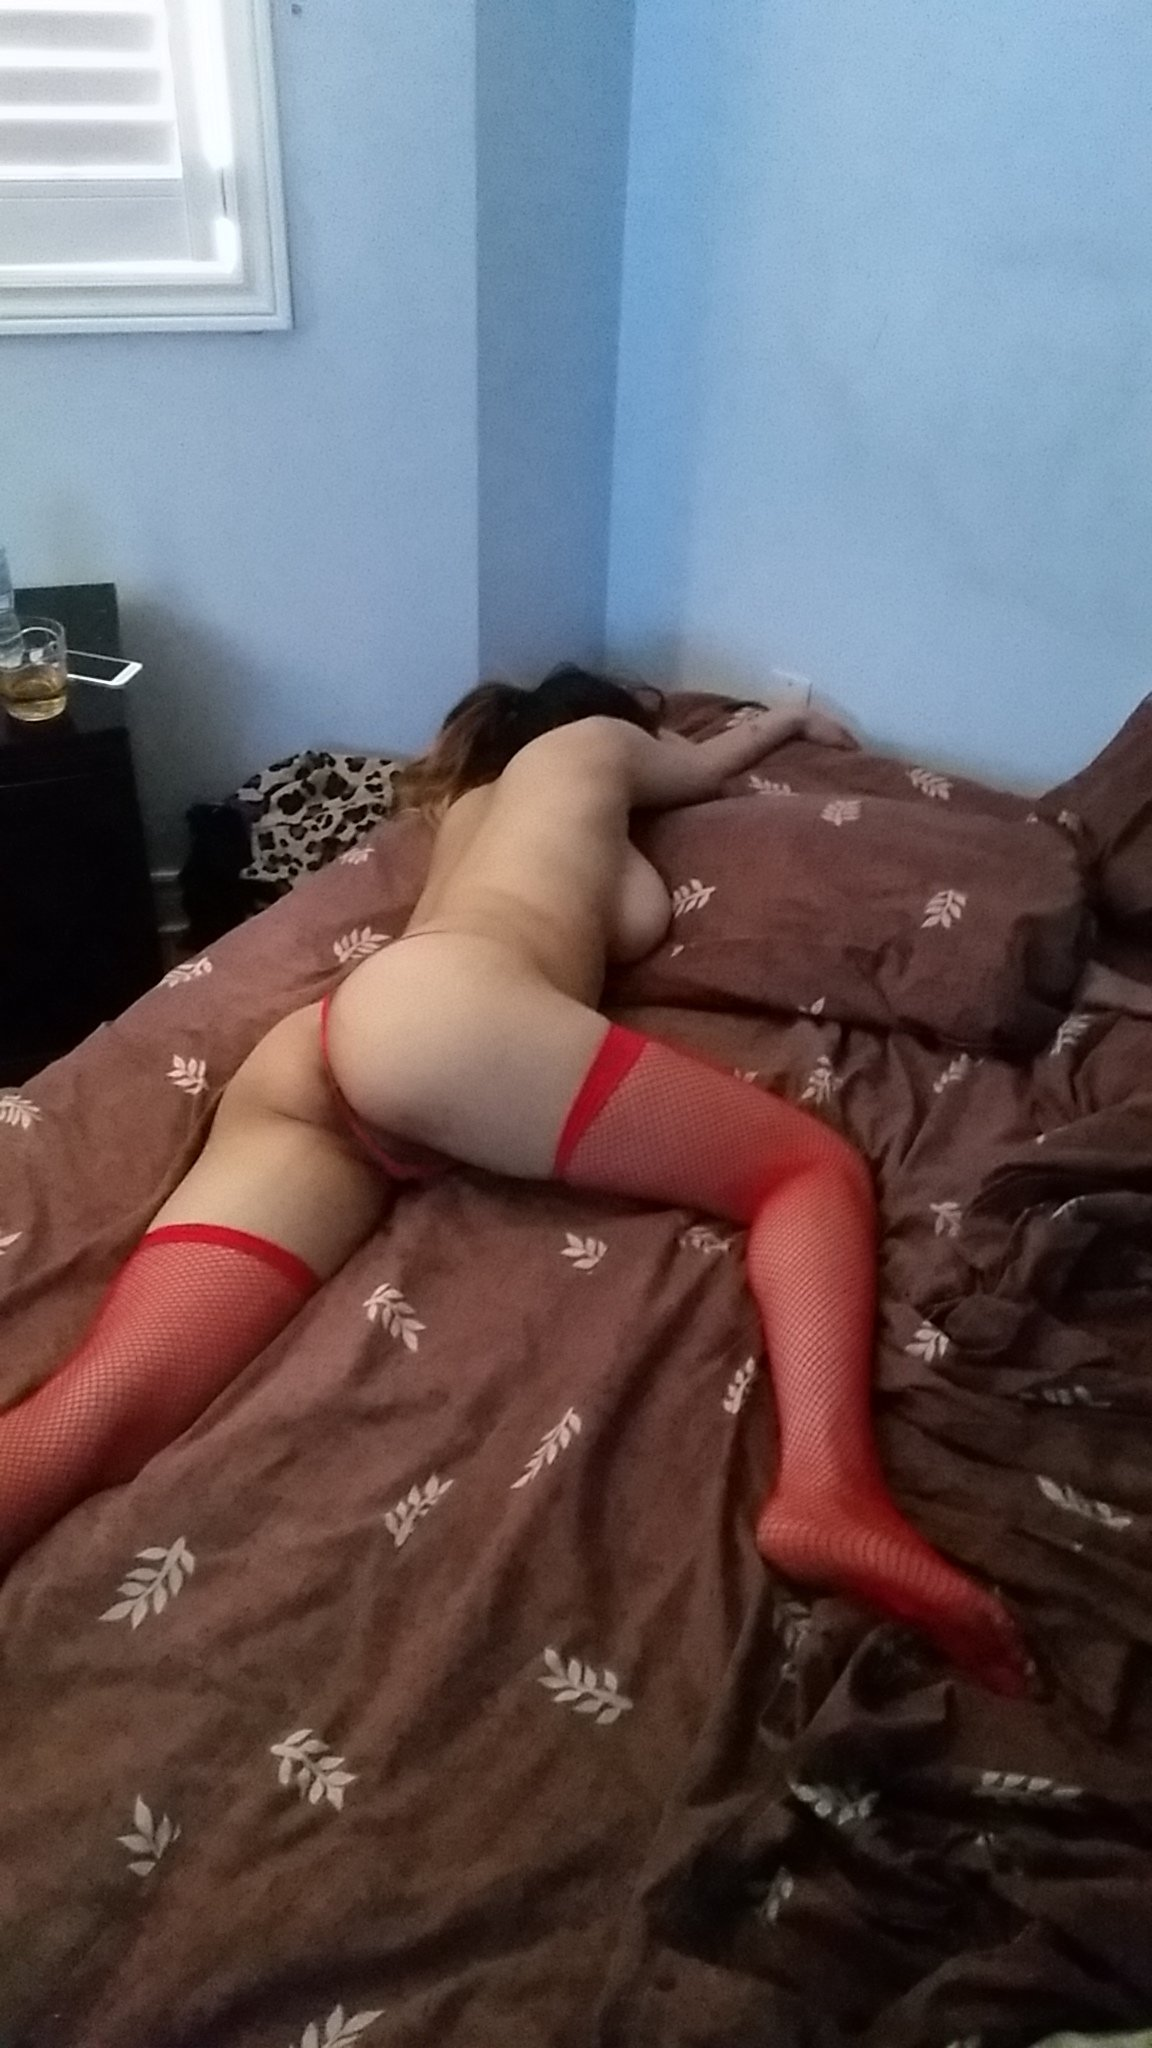 Brazzers latina milf Natural tits amateur homemade Reach thumb to t10